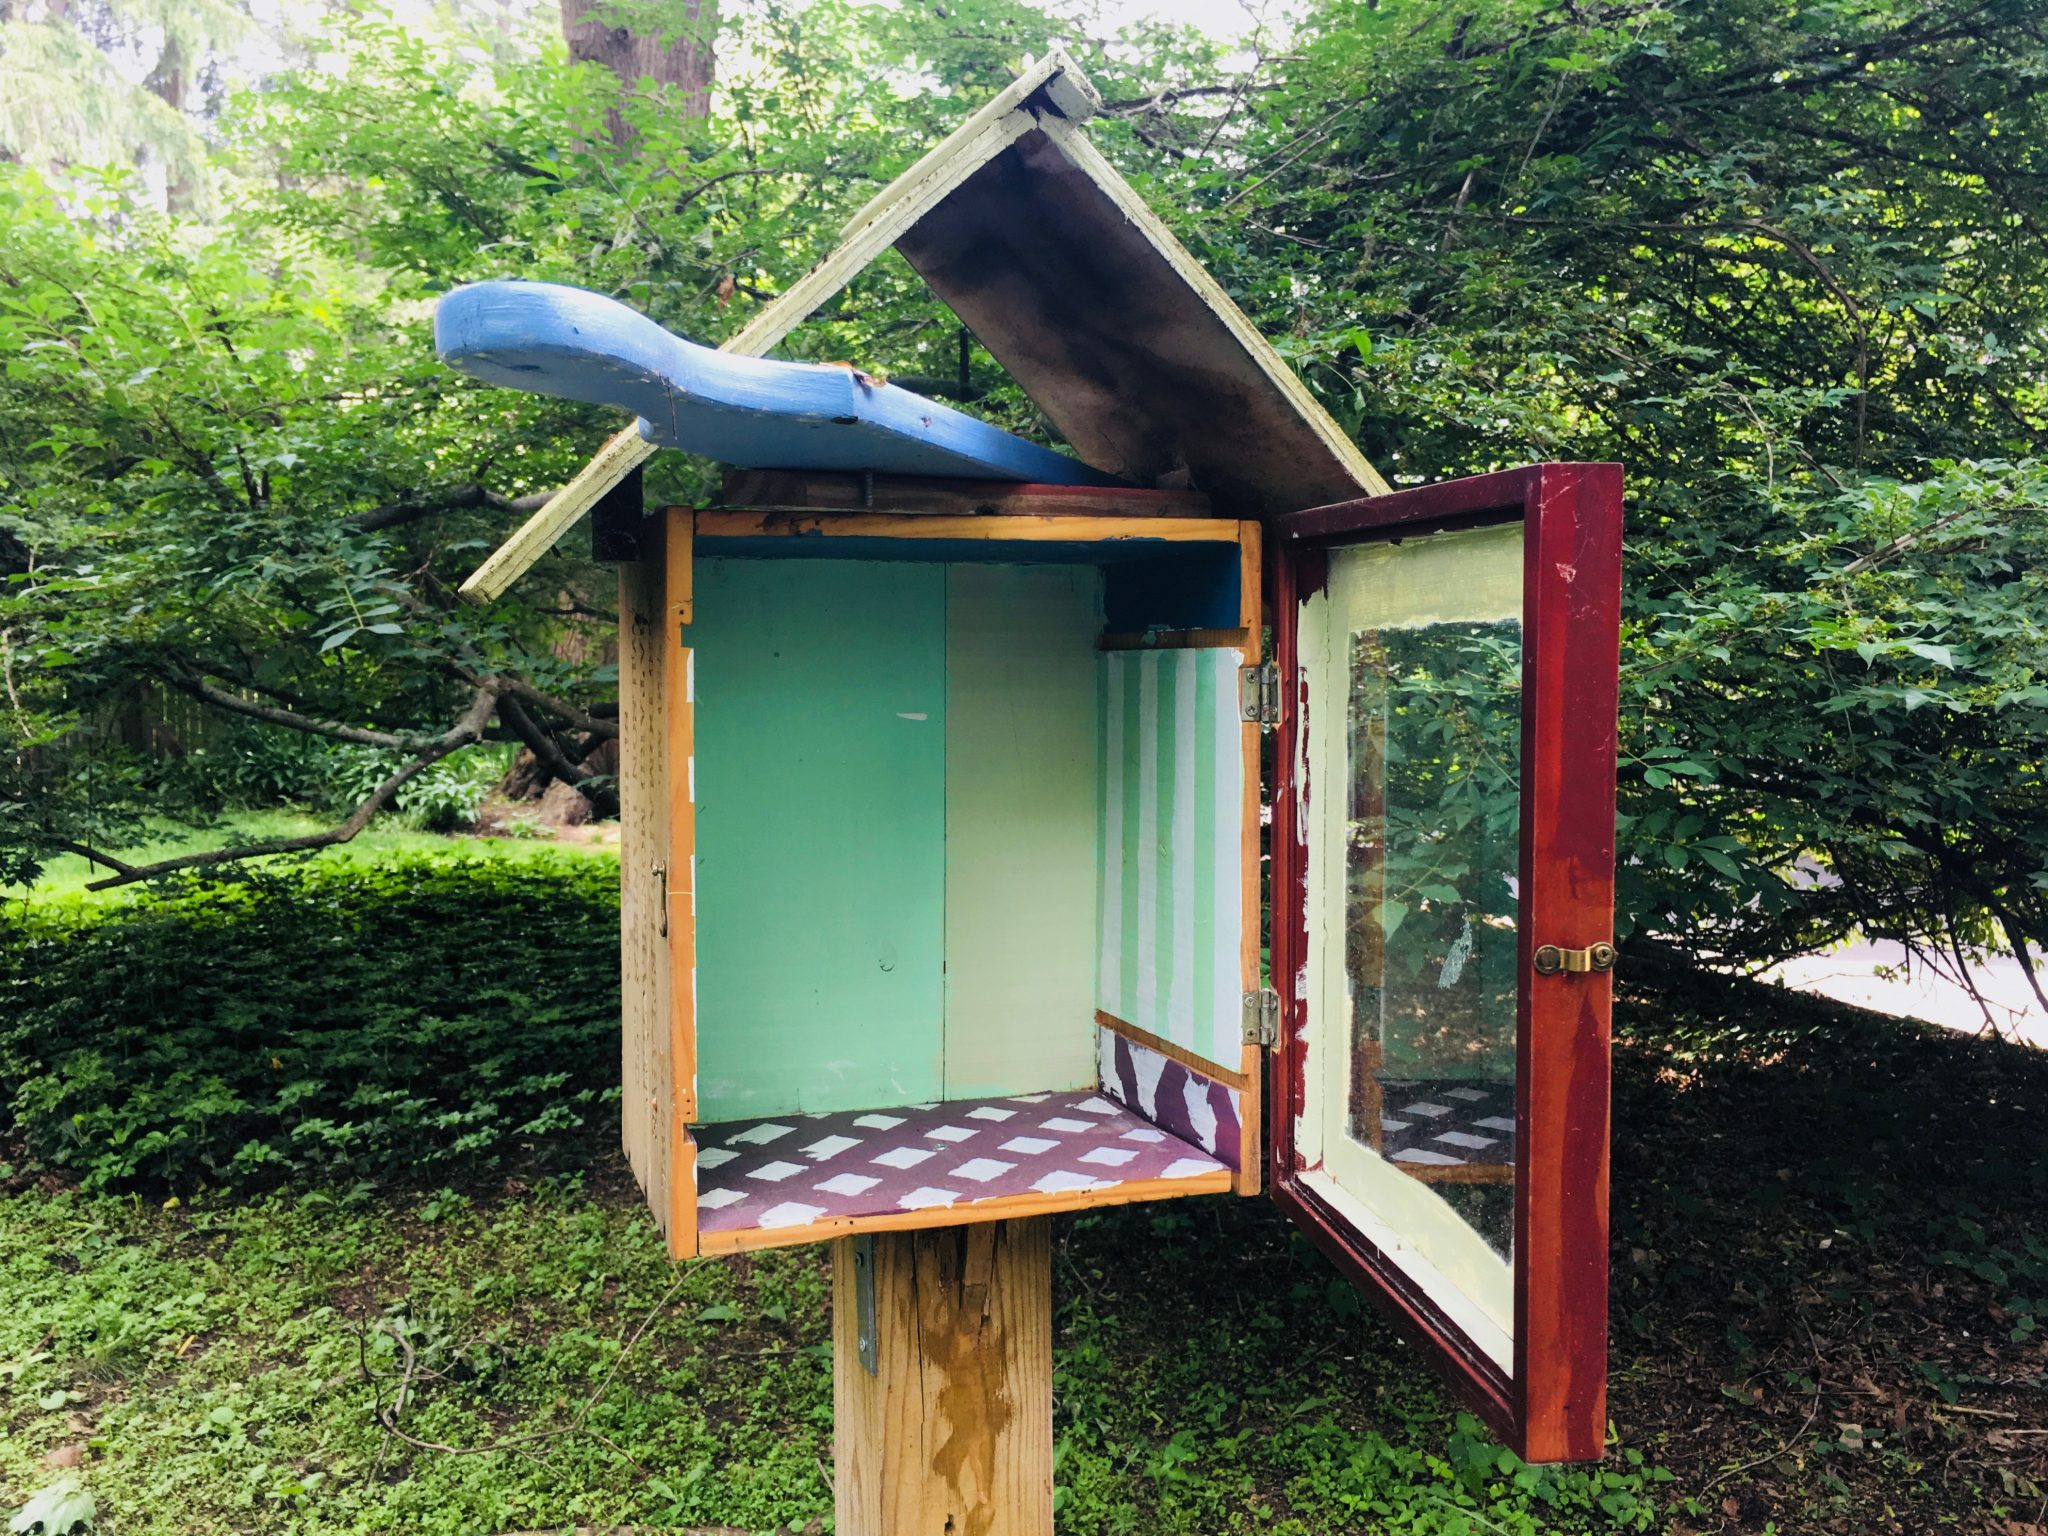 Little Library, Wellesley